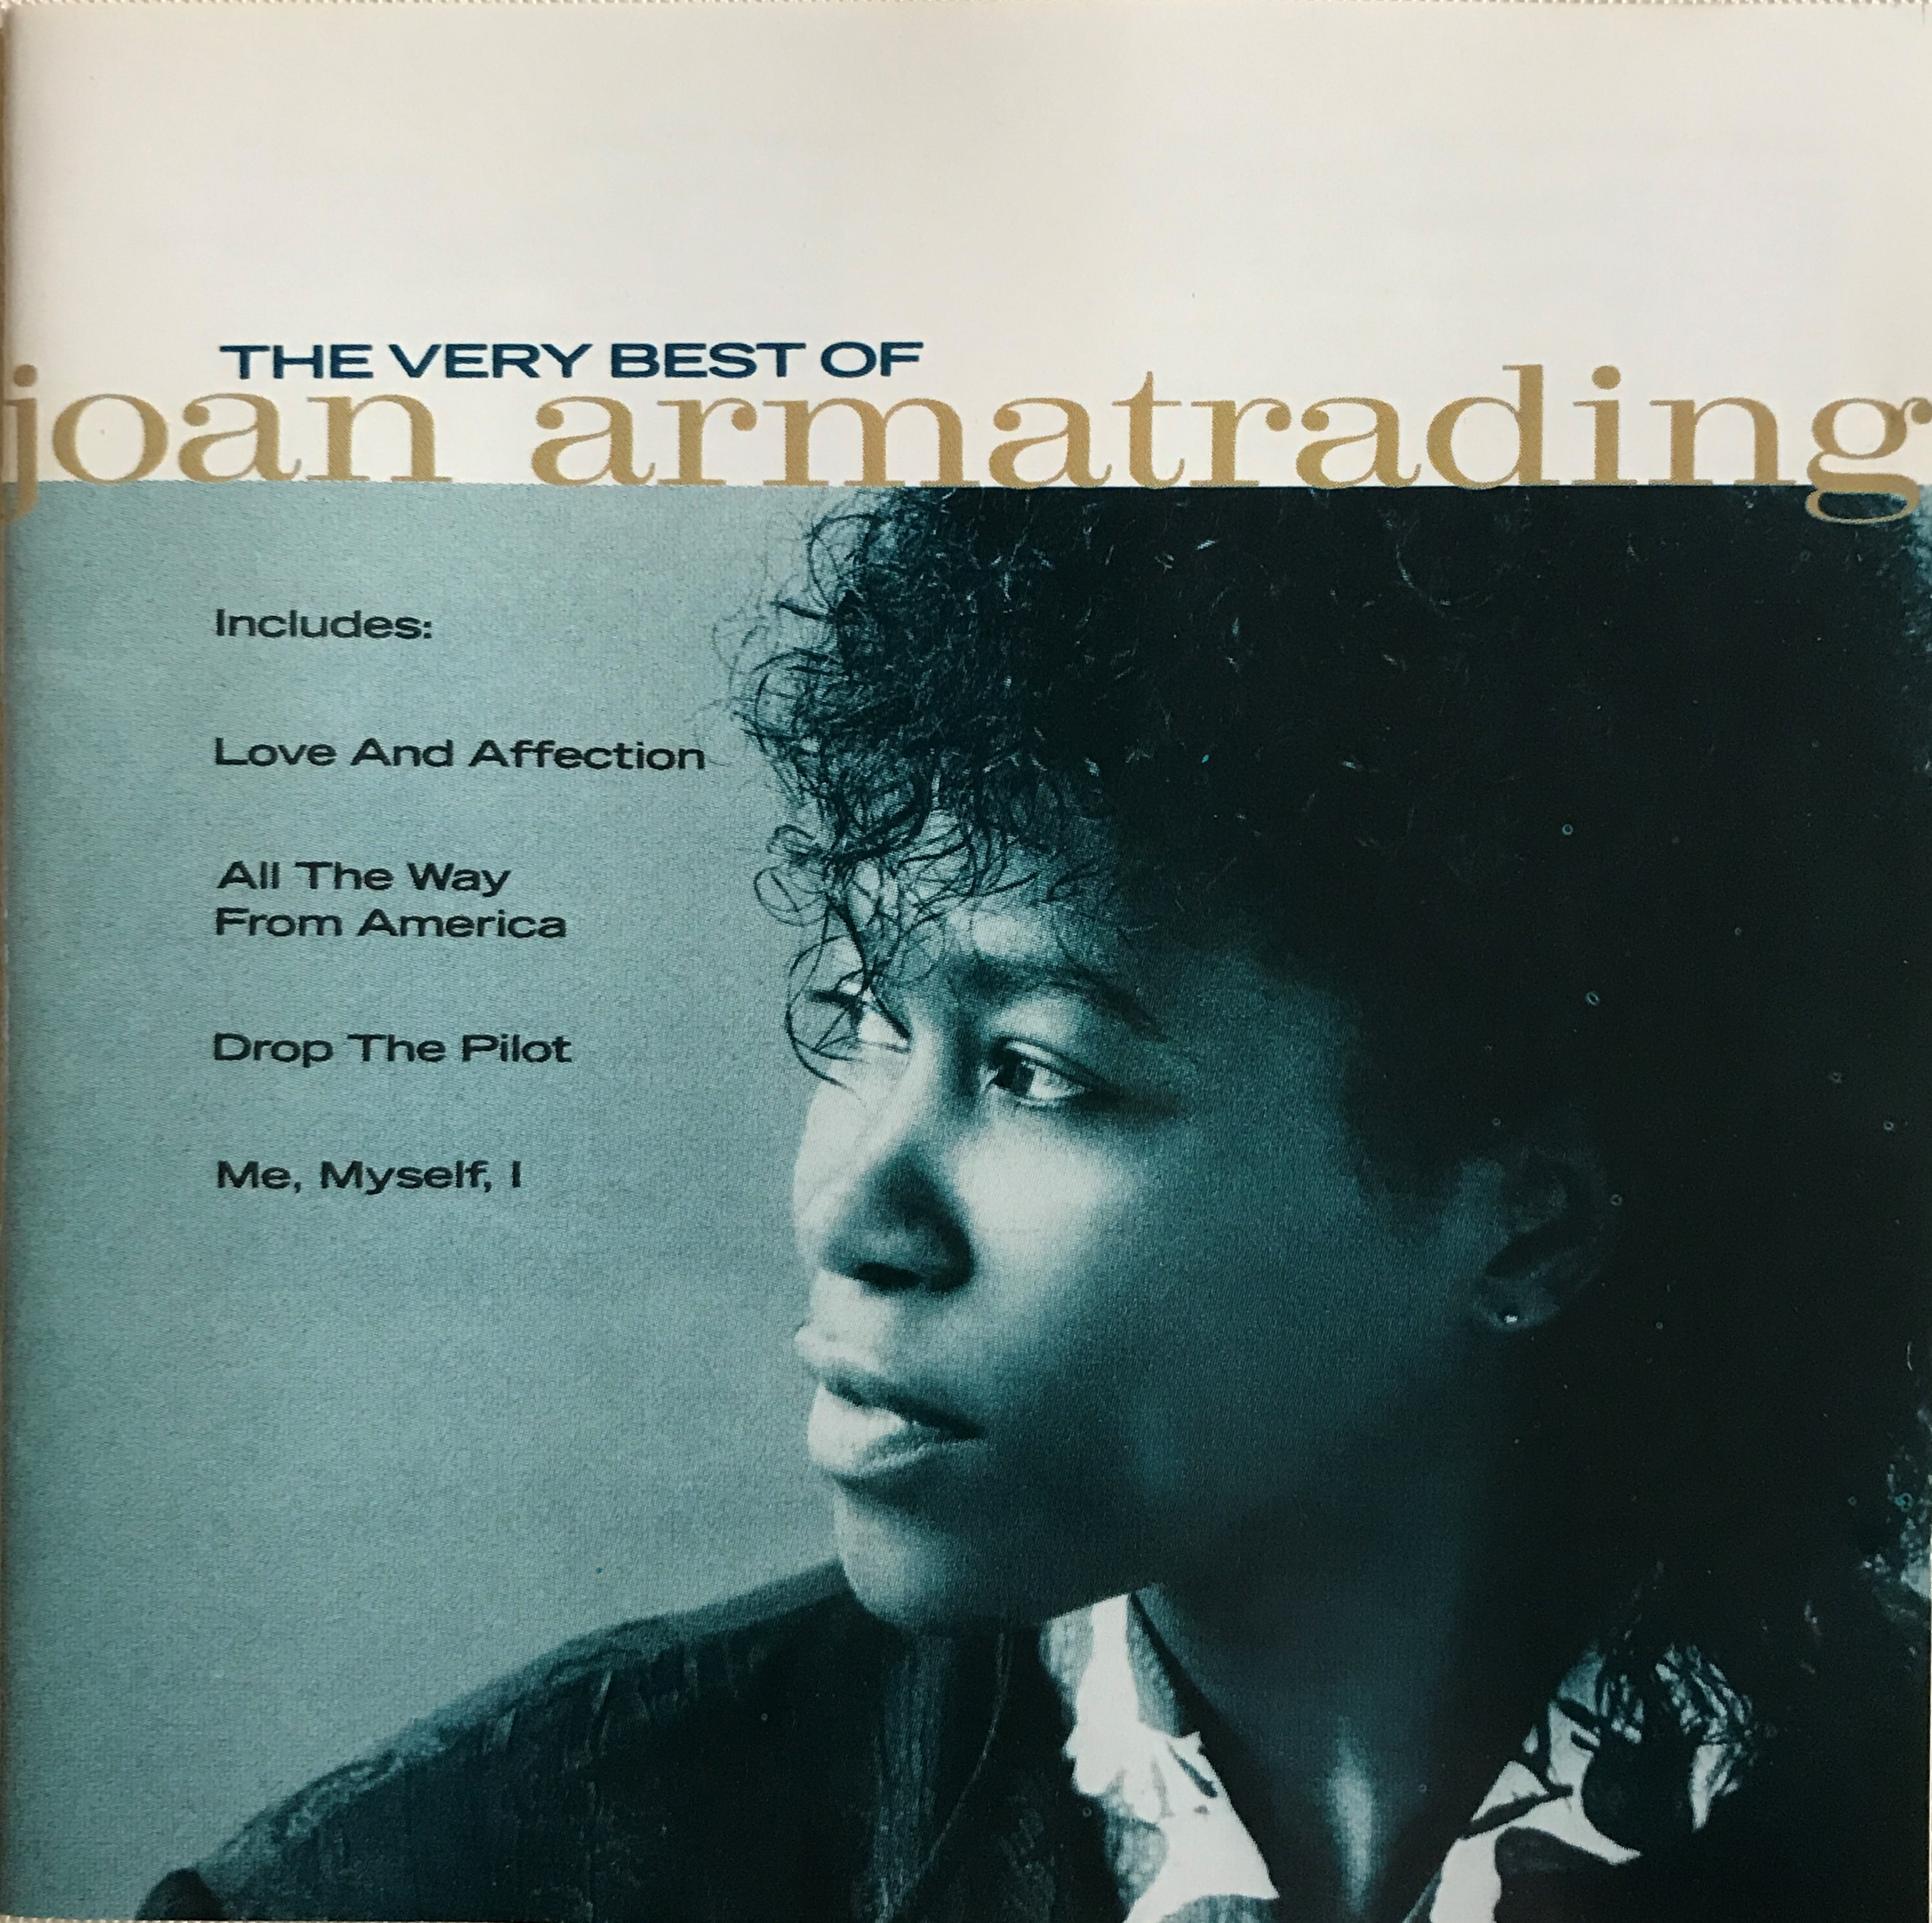 #47 Joan Armatrading – The Very Best Of